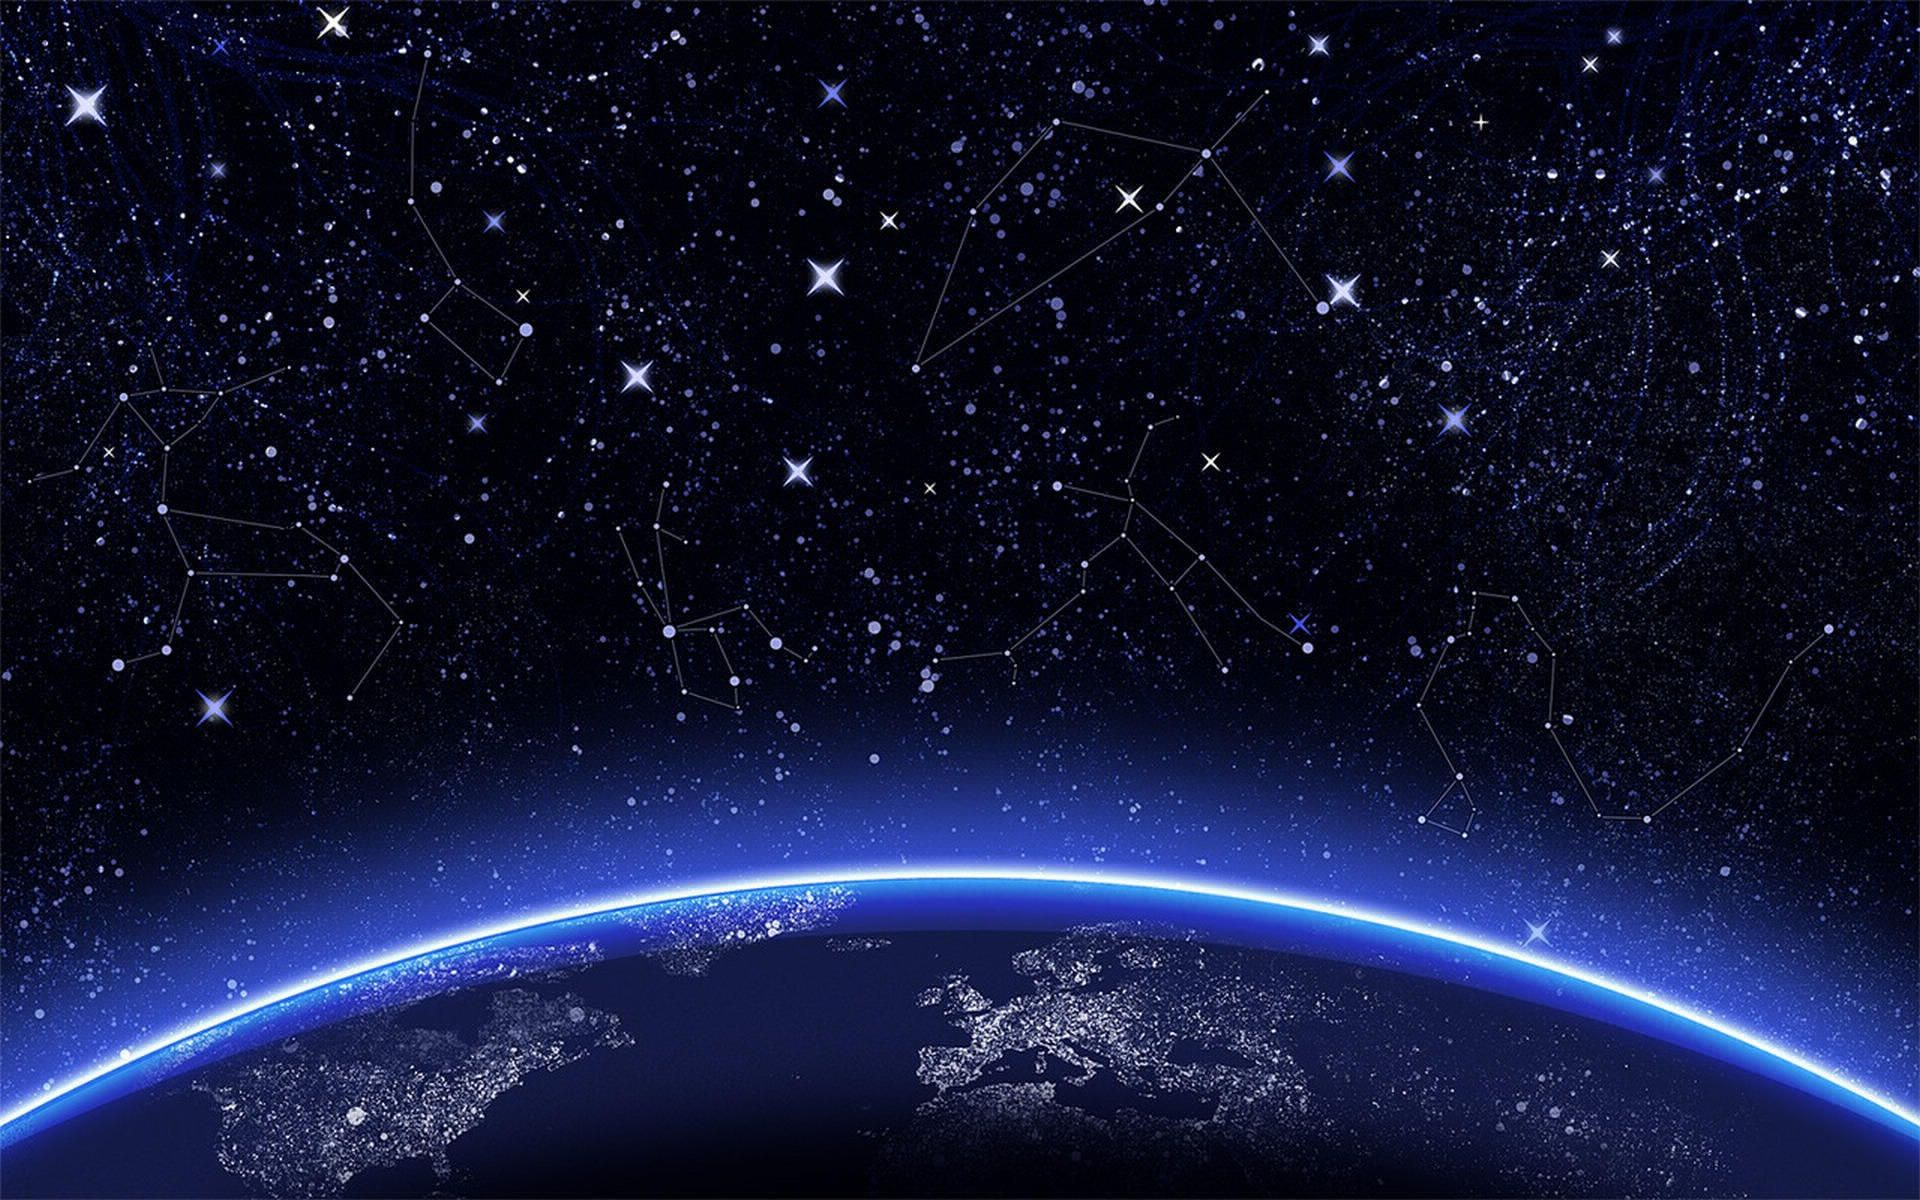 Hd wallpaper universe - Real Pictures Of The Universe Space Universe Wallpaper Freewallpapers Wallpapers Images Photography